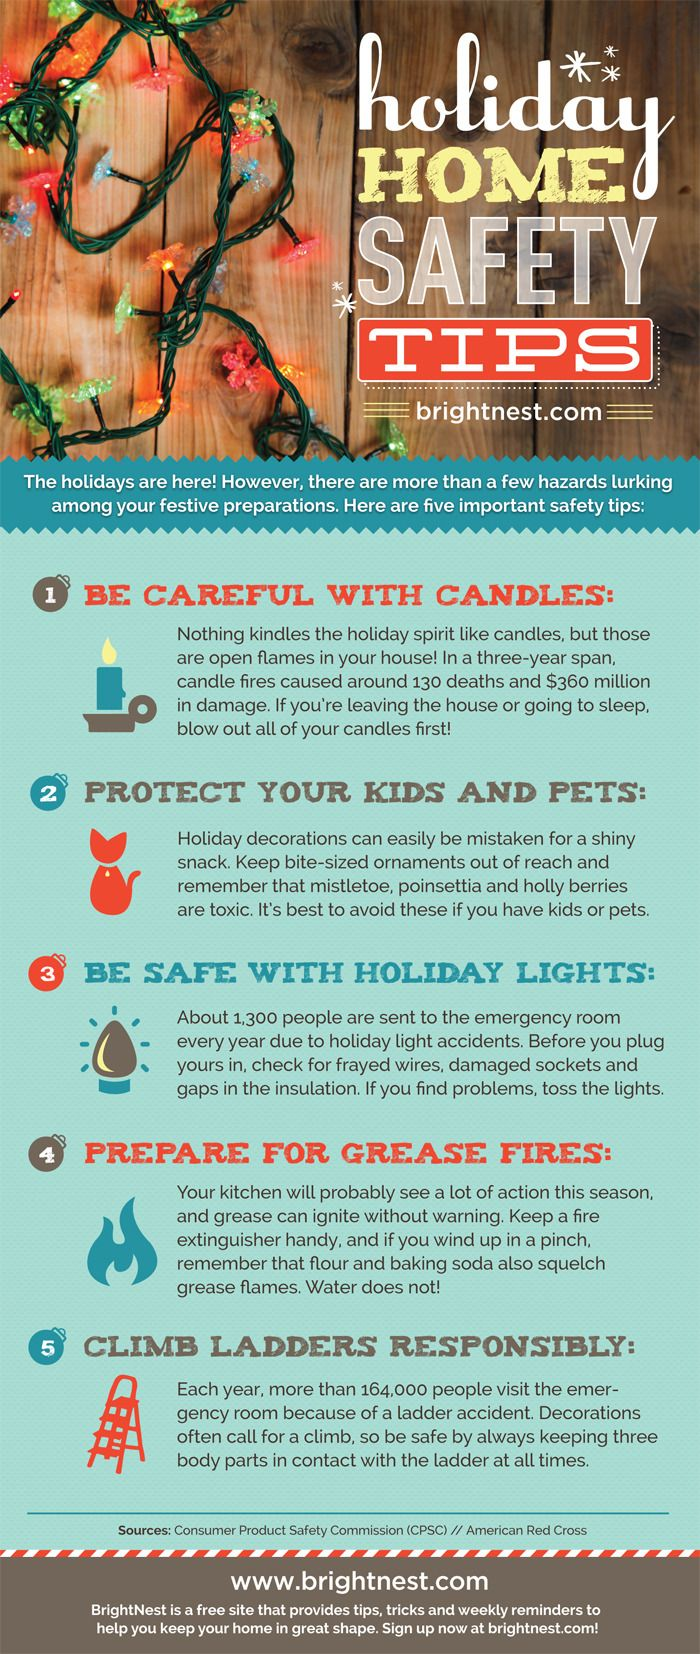 24 best home fire safety images on pinterest home safety for Fire prevention tips for home